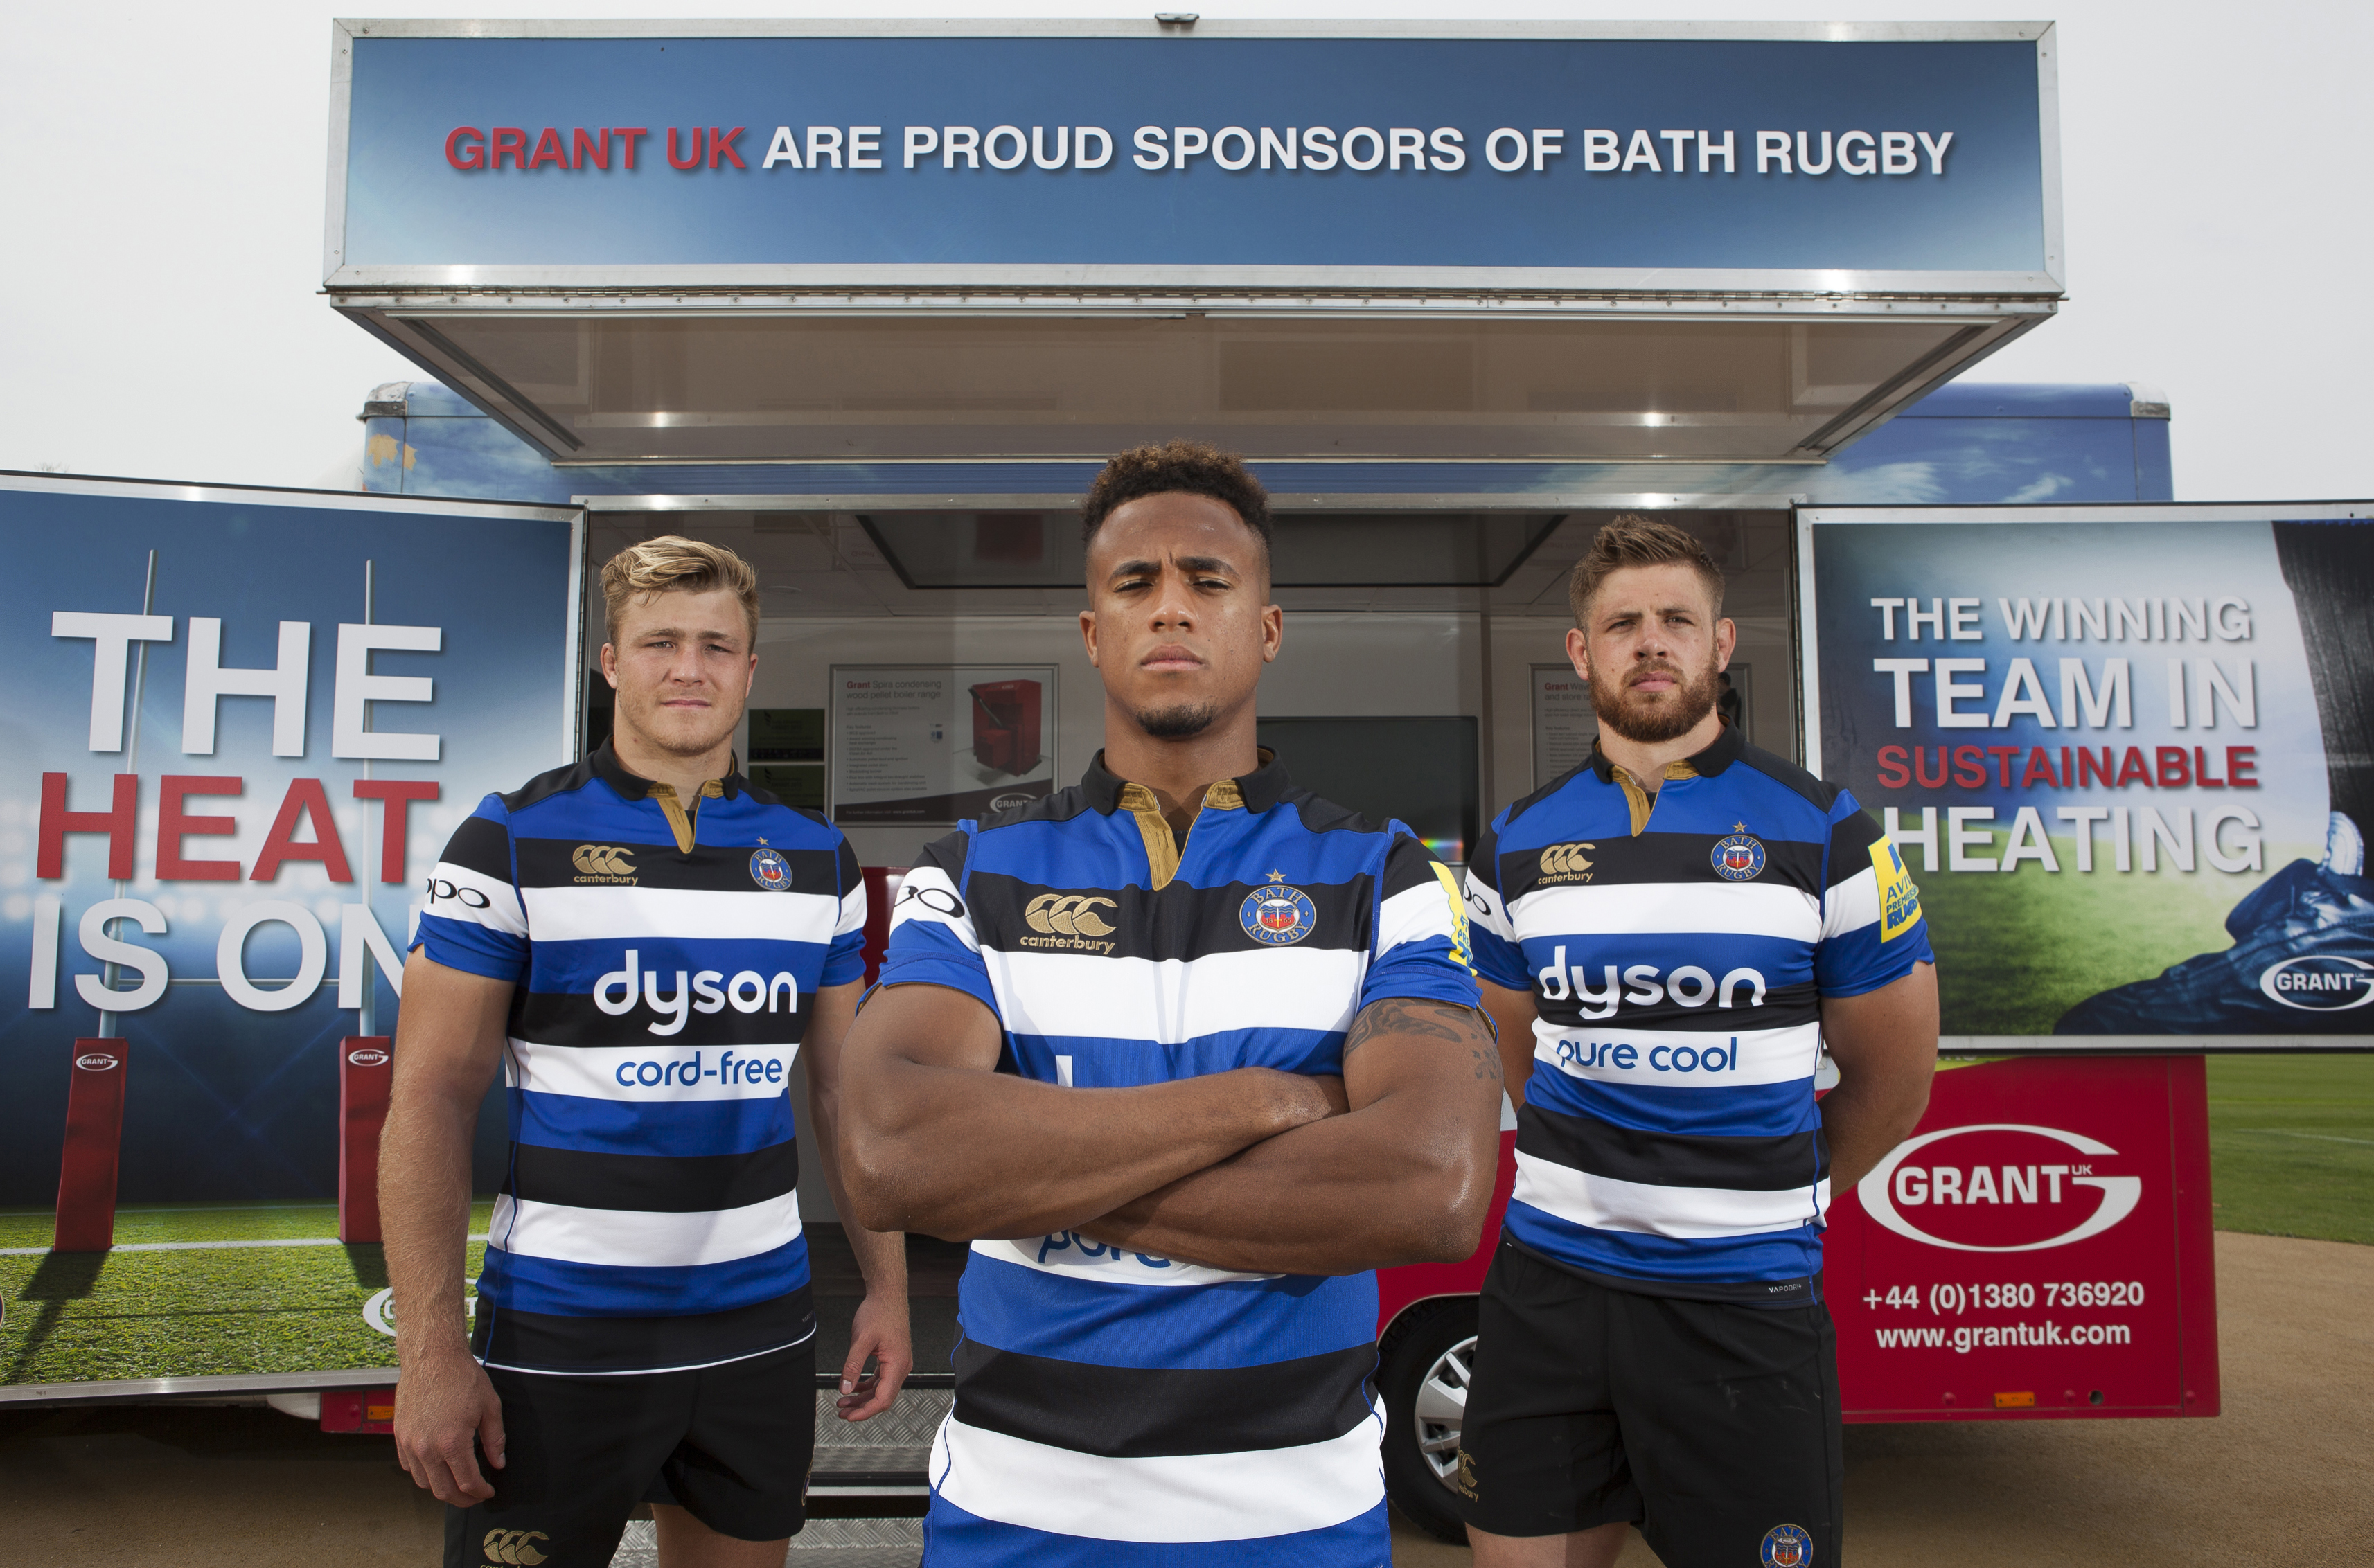 Grant UK turns up the heat for another season with Bath Rugby